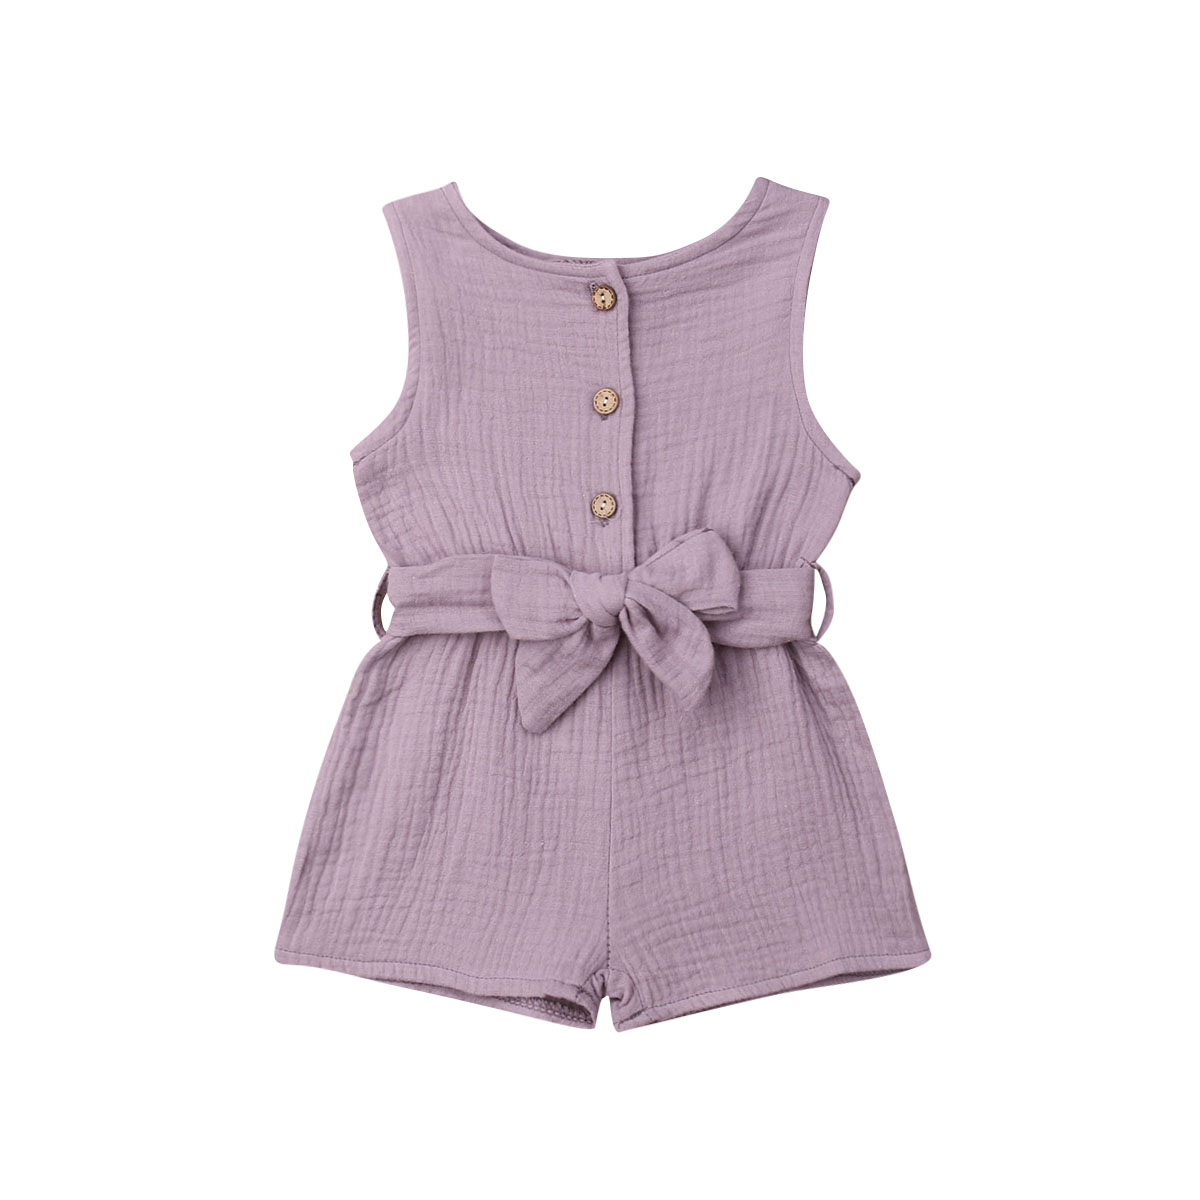 0 18M Newborn Baby Girl Solid Romper Kids Bowknot Button Sleeveless Playsuit with Belt Outfits 2Pcs Summer Cute Clothes Sets in Clothing Sets from Mother Kids